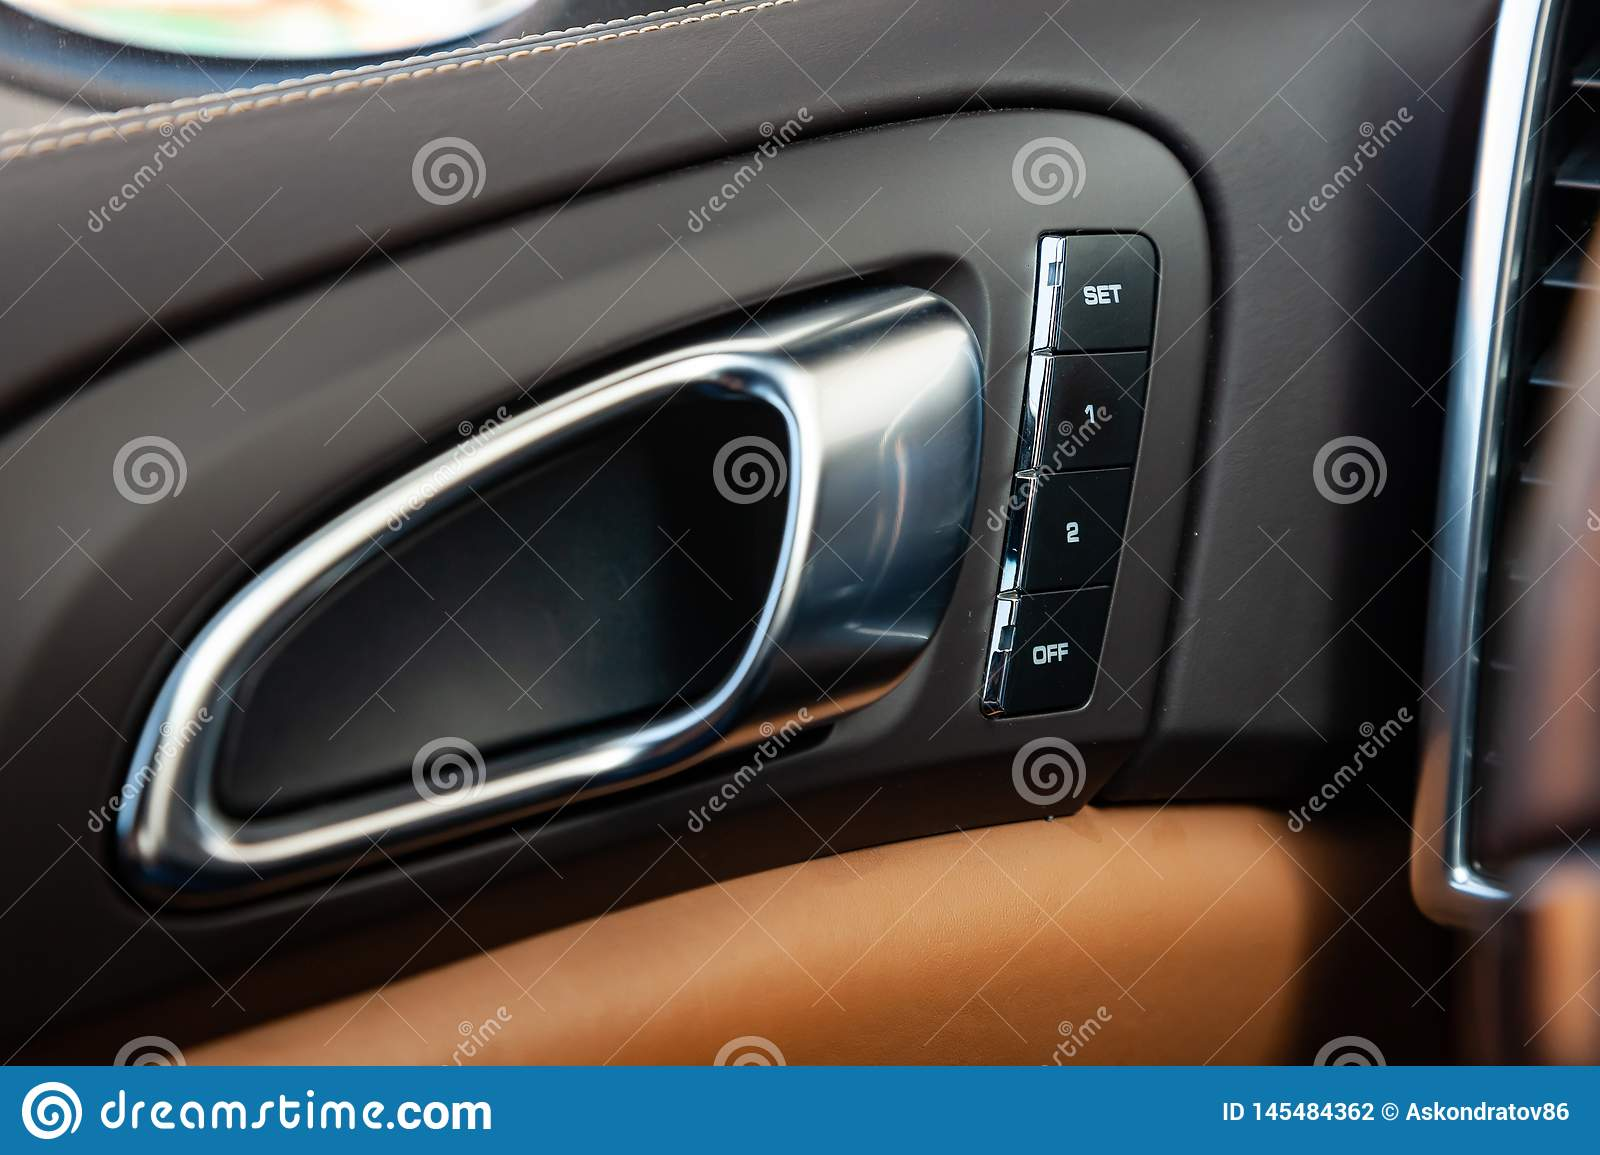 The Interior Of The Car Porsche Cayenne 958 2011 Year With A View Of The Door Handle Dashboard Memory Control Seats Button With Editorial Photography Image Of Engine Driving 145484362